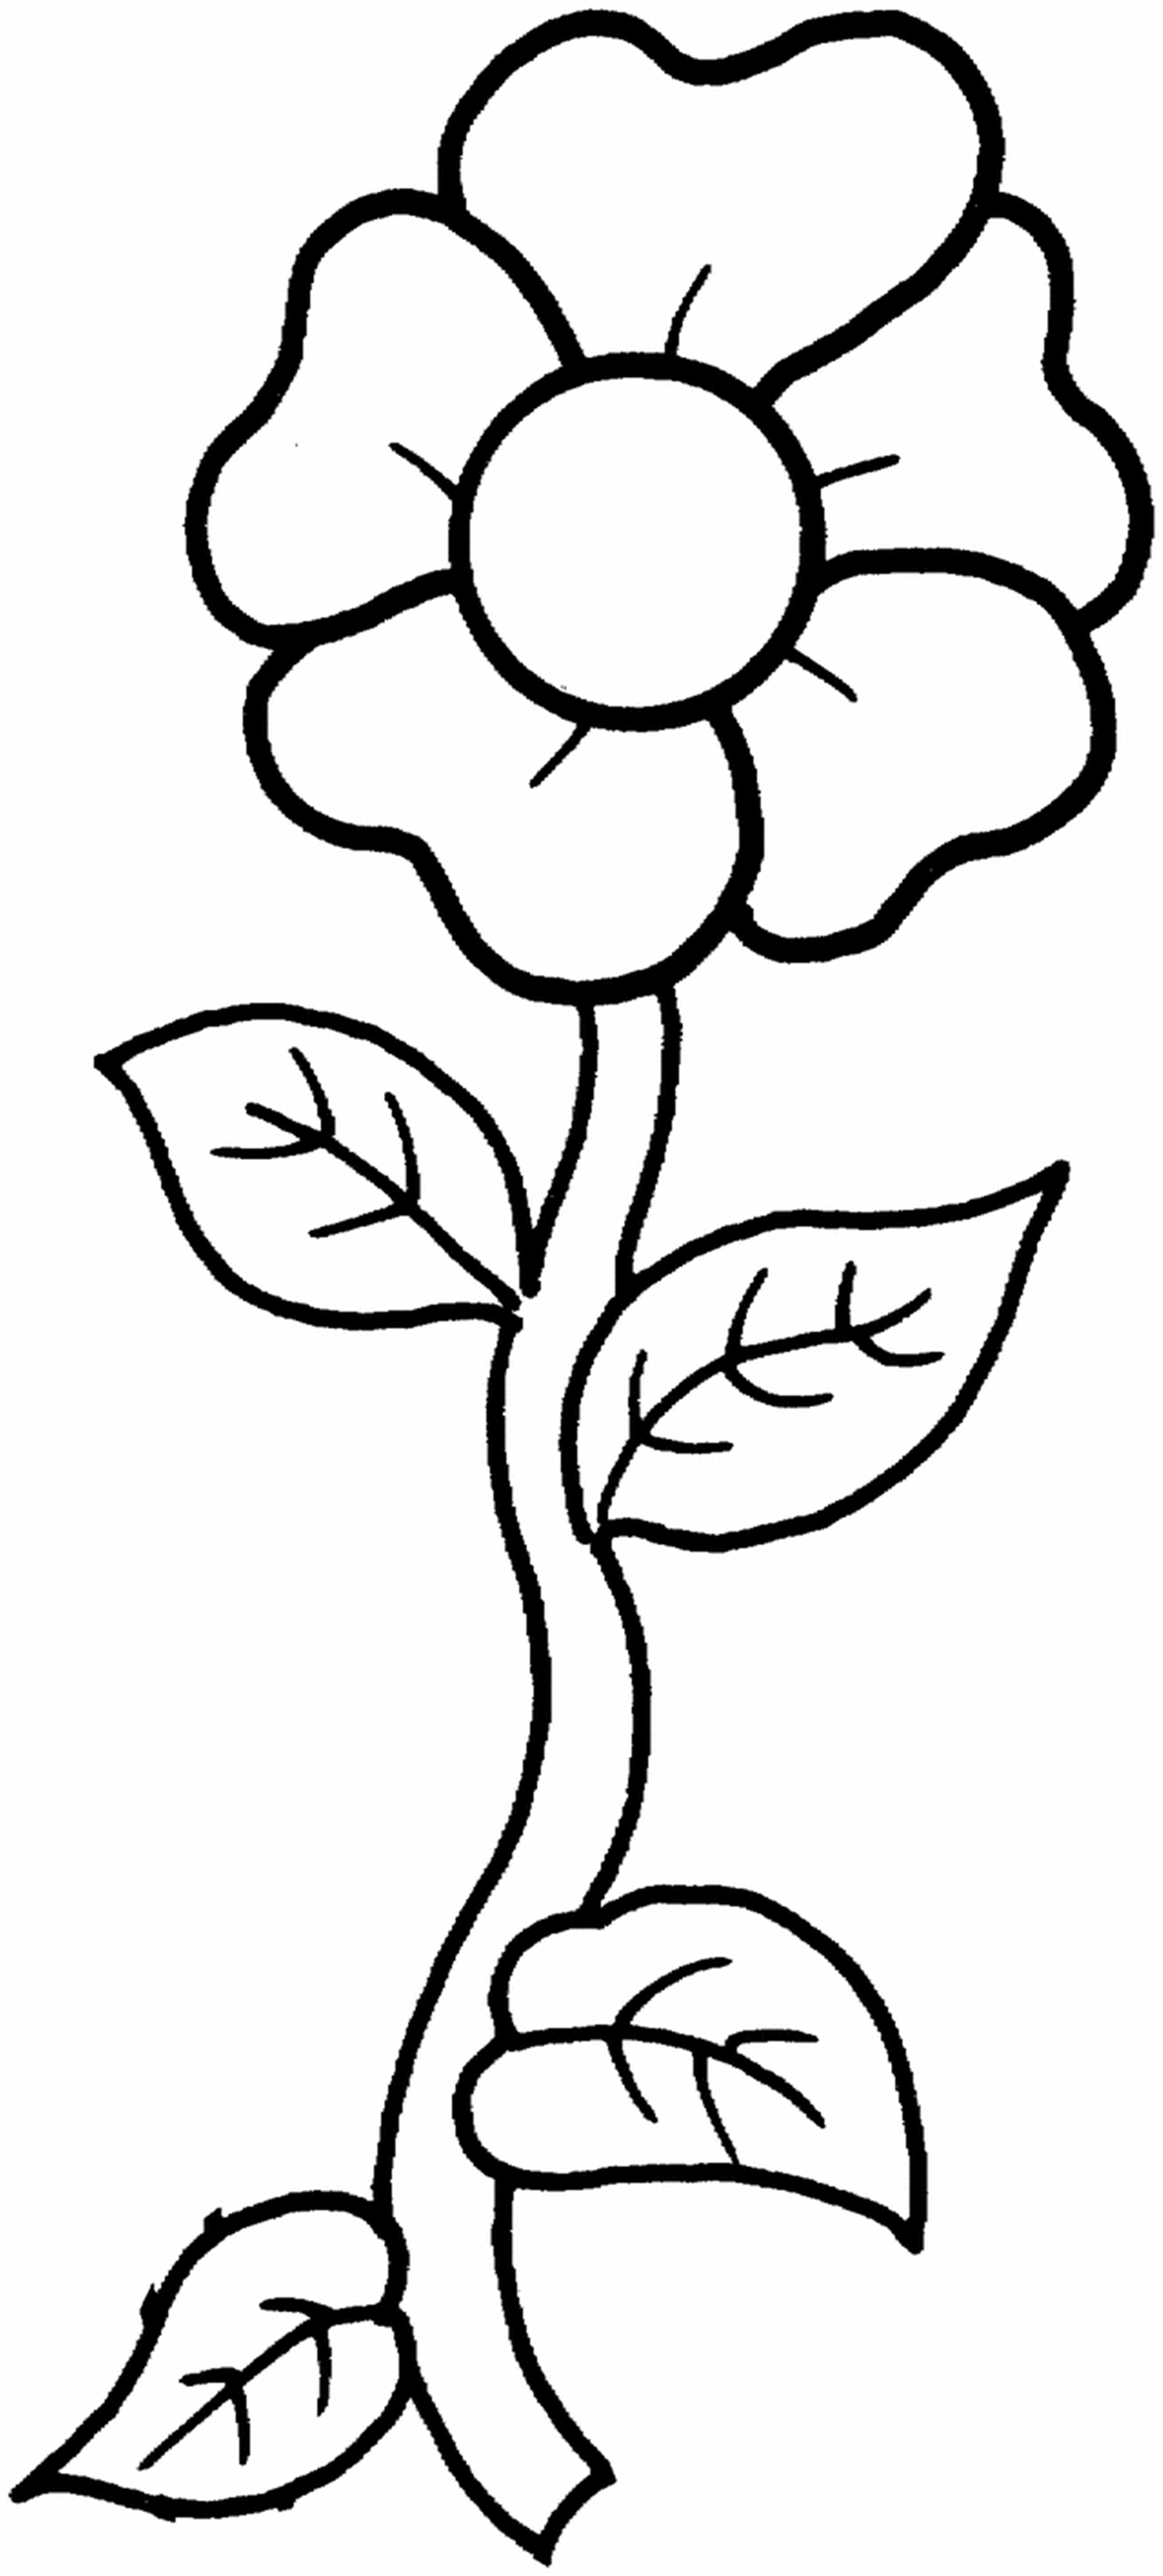 coloring outline images of flowers free printable flower coloring pages for kids best flowers outline coloring of images